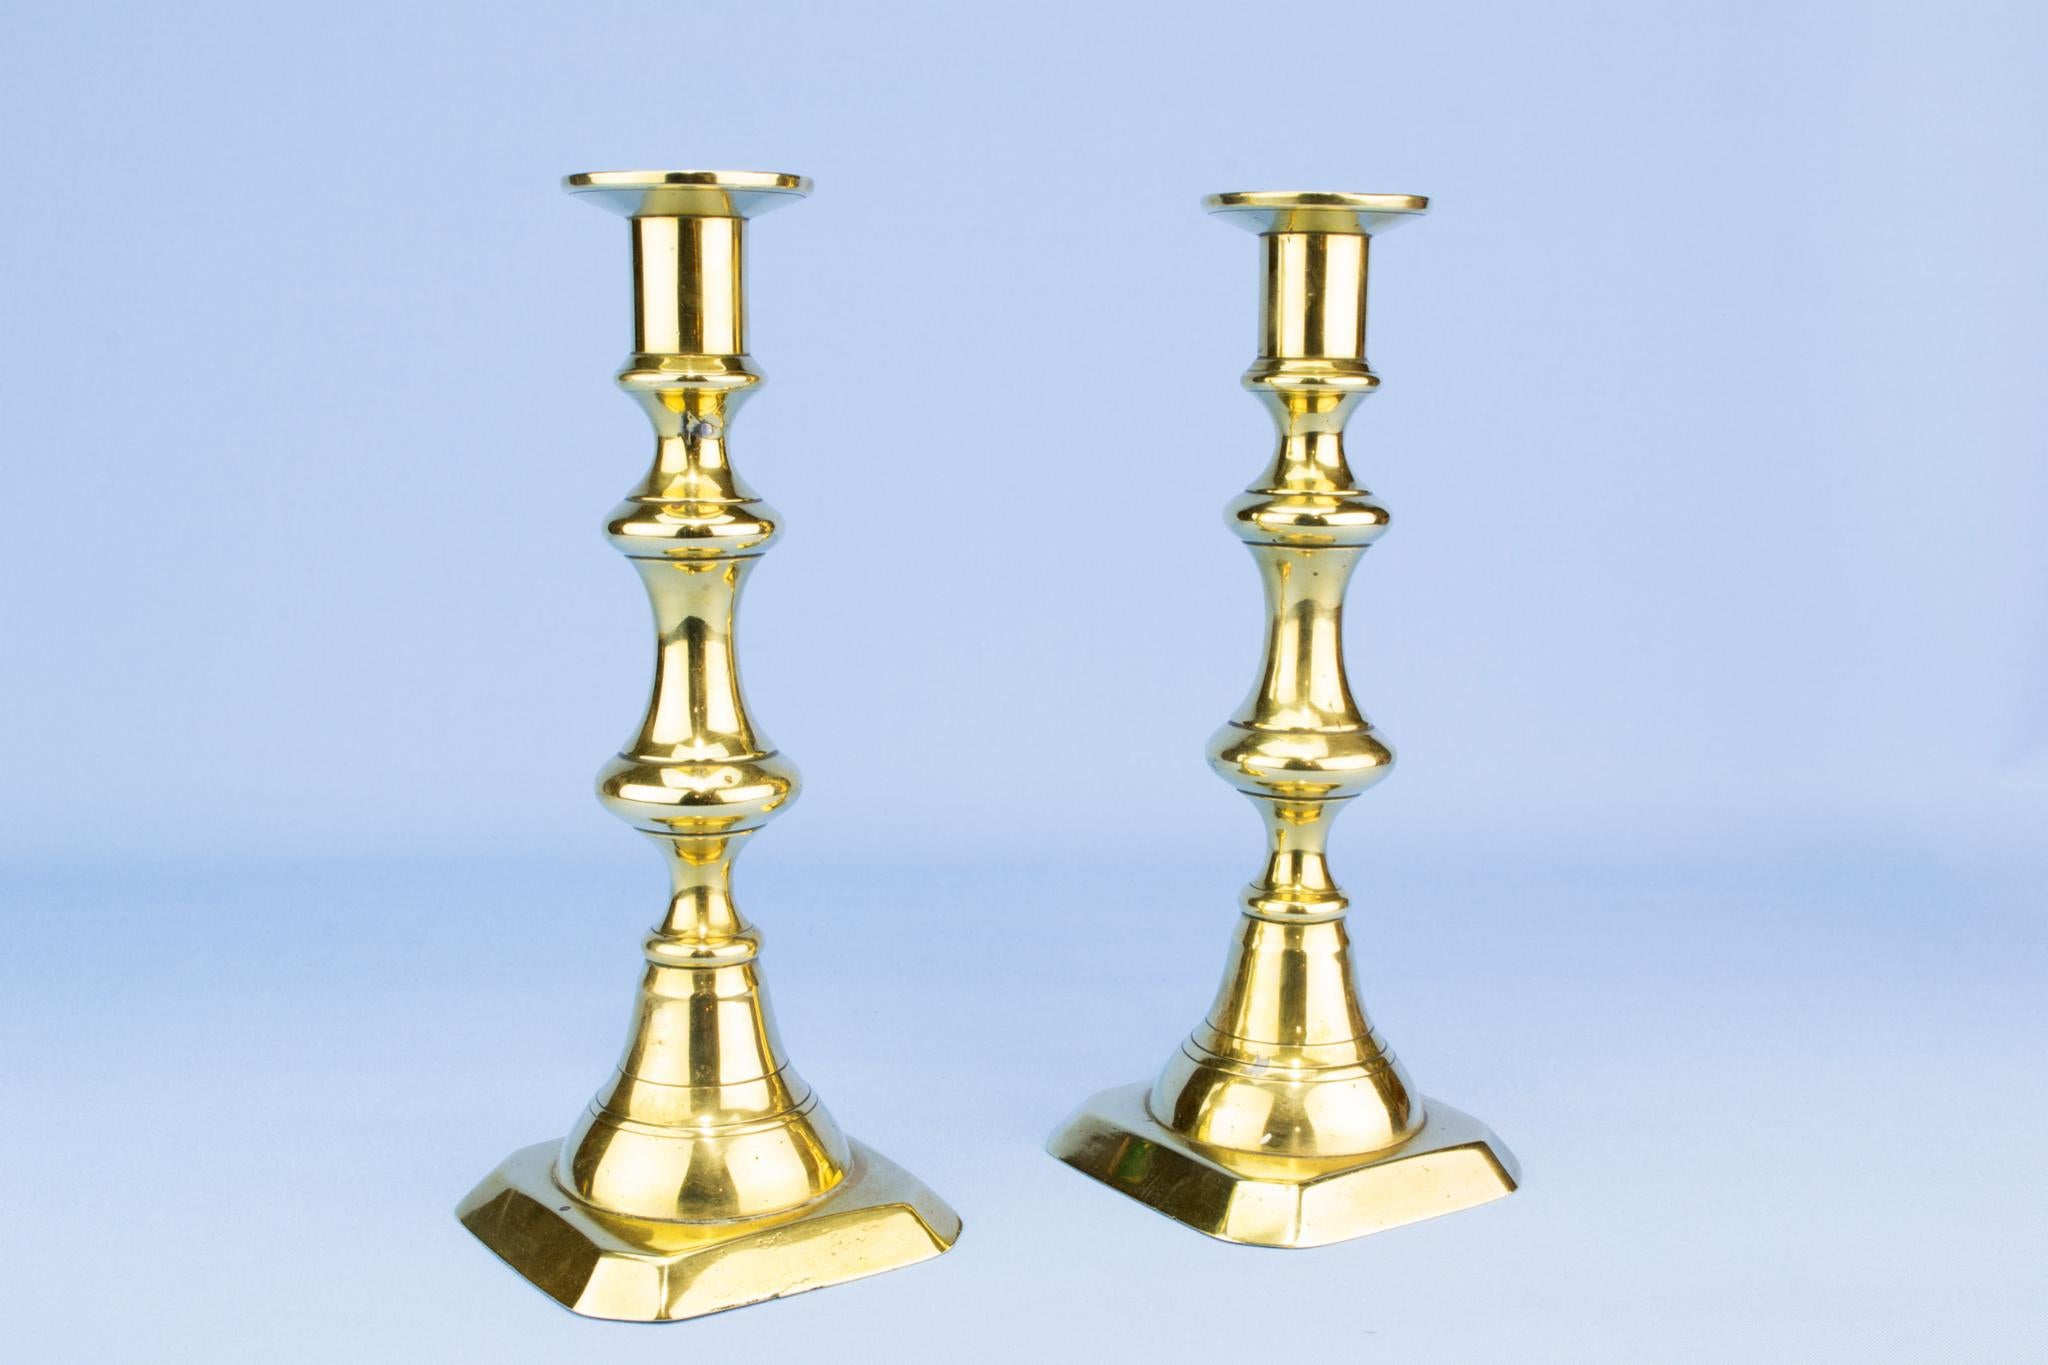 pair of Polished brass candlesticks, English 19th century